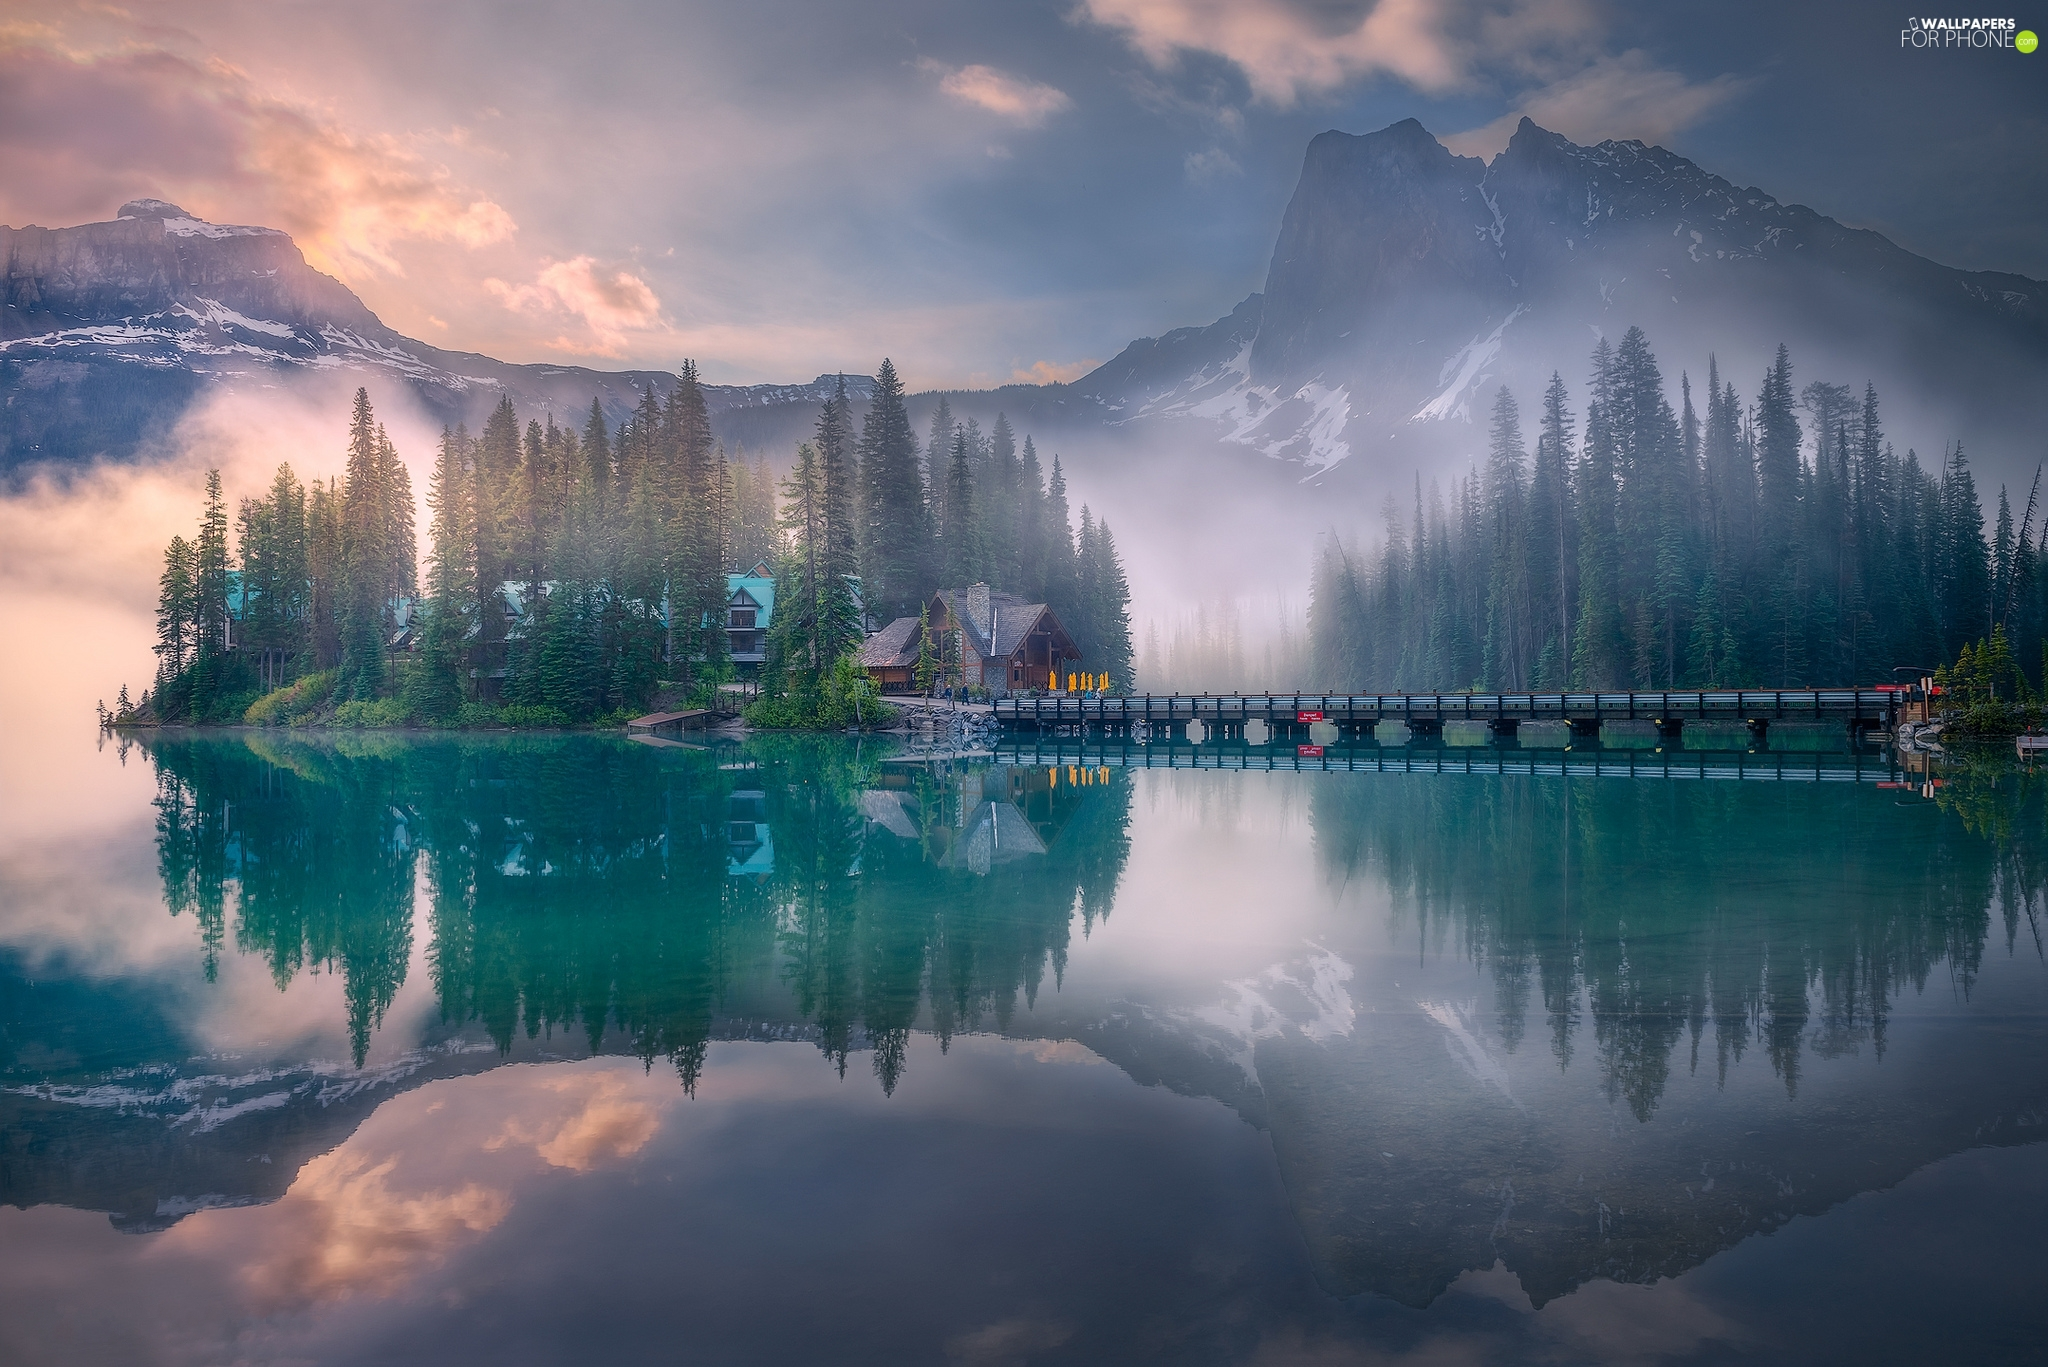 Fog, Emerald Lake, bridge, Province of British Columbia, Mountains, Yoho National Park, house, Canada, clouds, forest